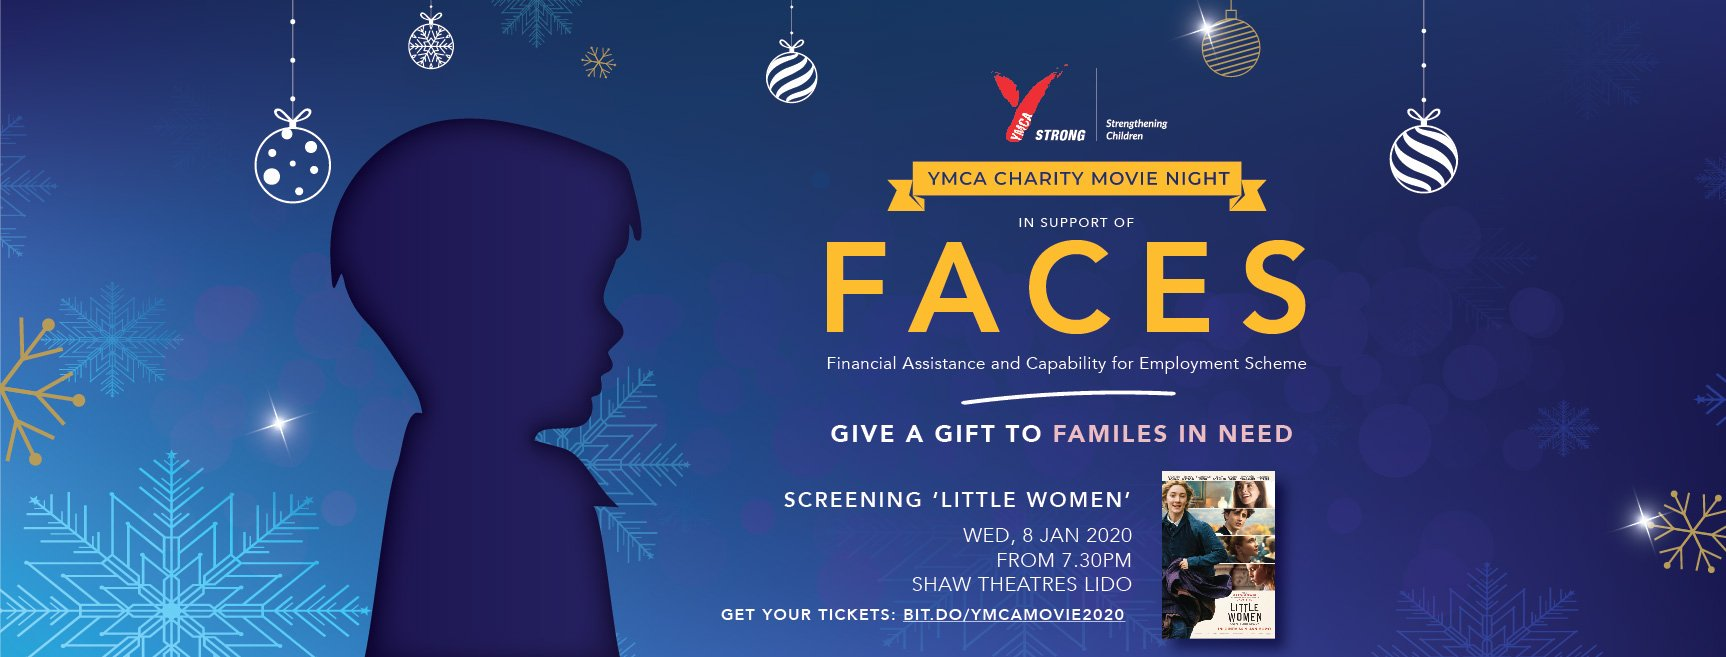 Give a Gift to Families in Need by YMCA 8 Jan 2020